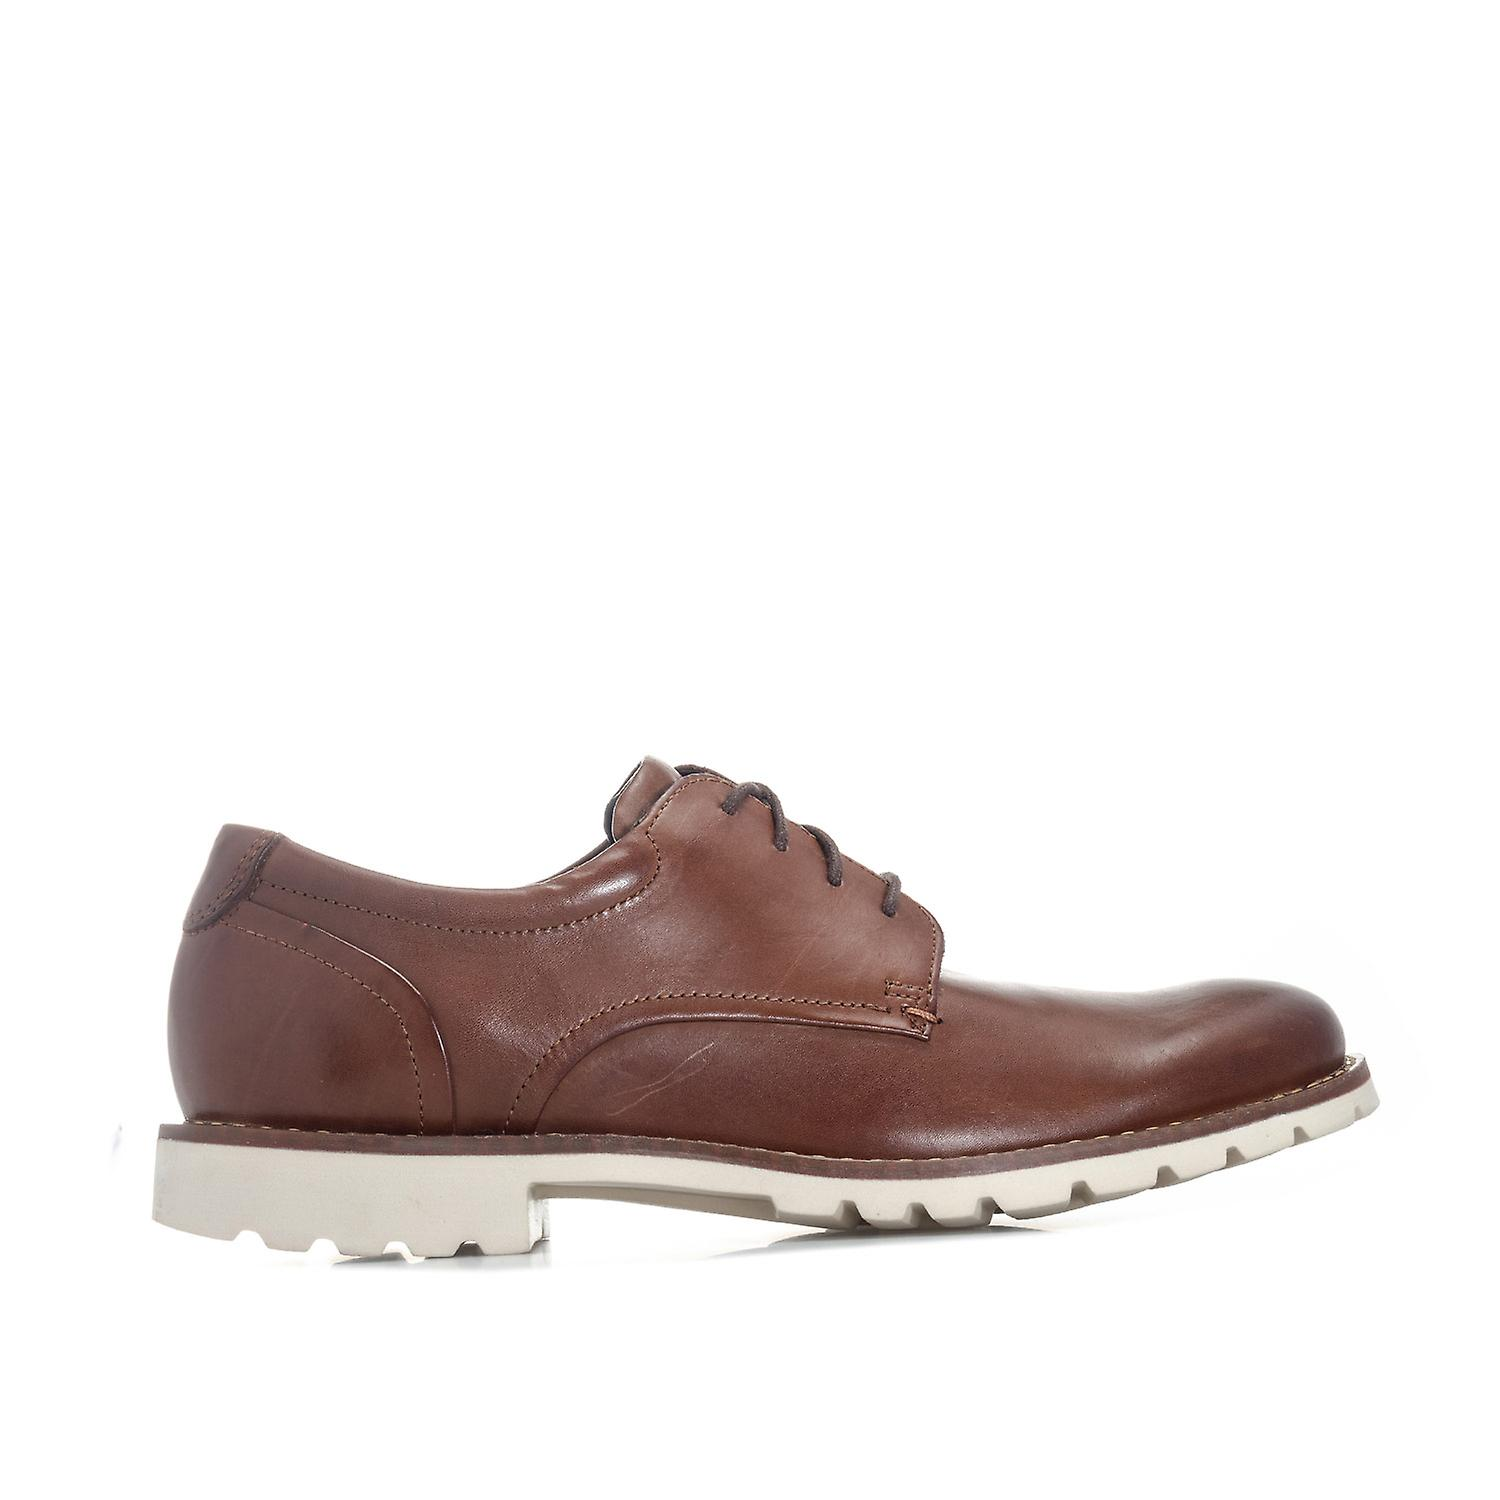 Mens Rockport Sharp & Ready Plain Toe chaussures In marron- Lace Fastening- Round Toe-